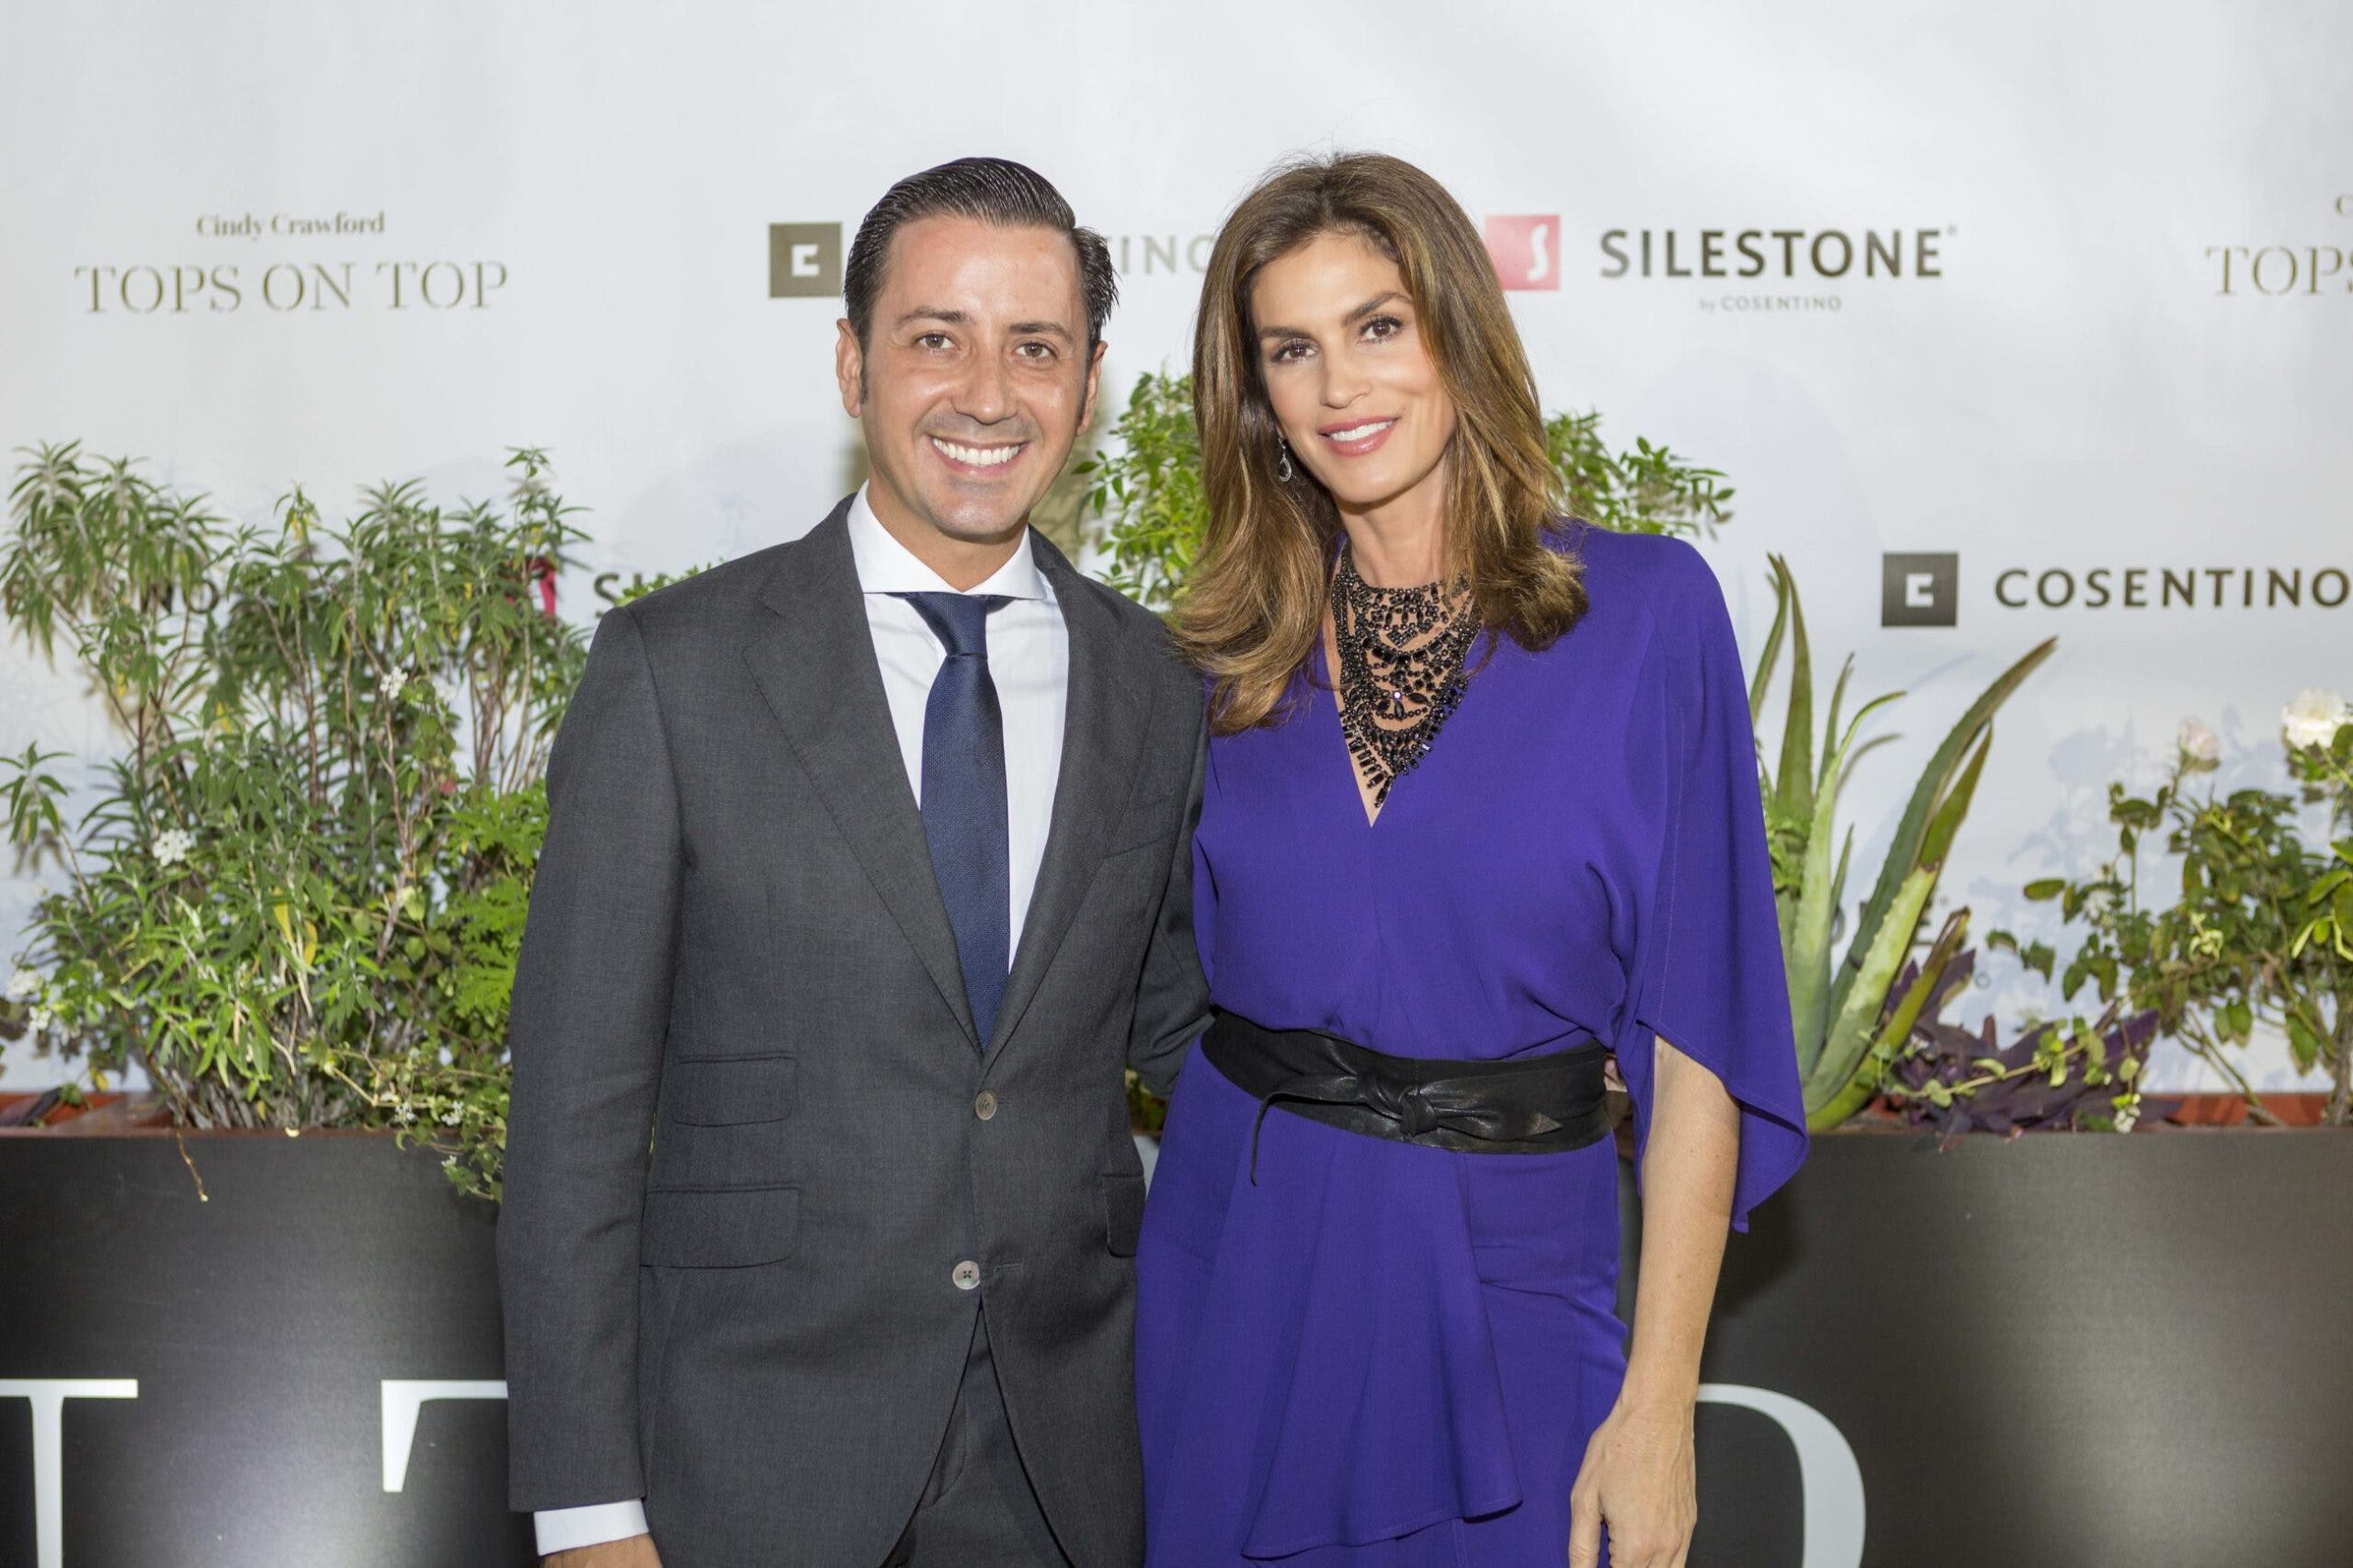 """Image of Cindy Crawford Cosentino 3 prensa 1 1 scaled in Cindy Crawford and """"Tops on Top"""" by Silestone® in Houston - Cosentino"""